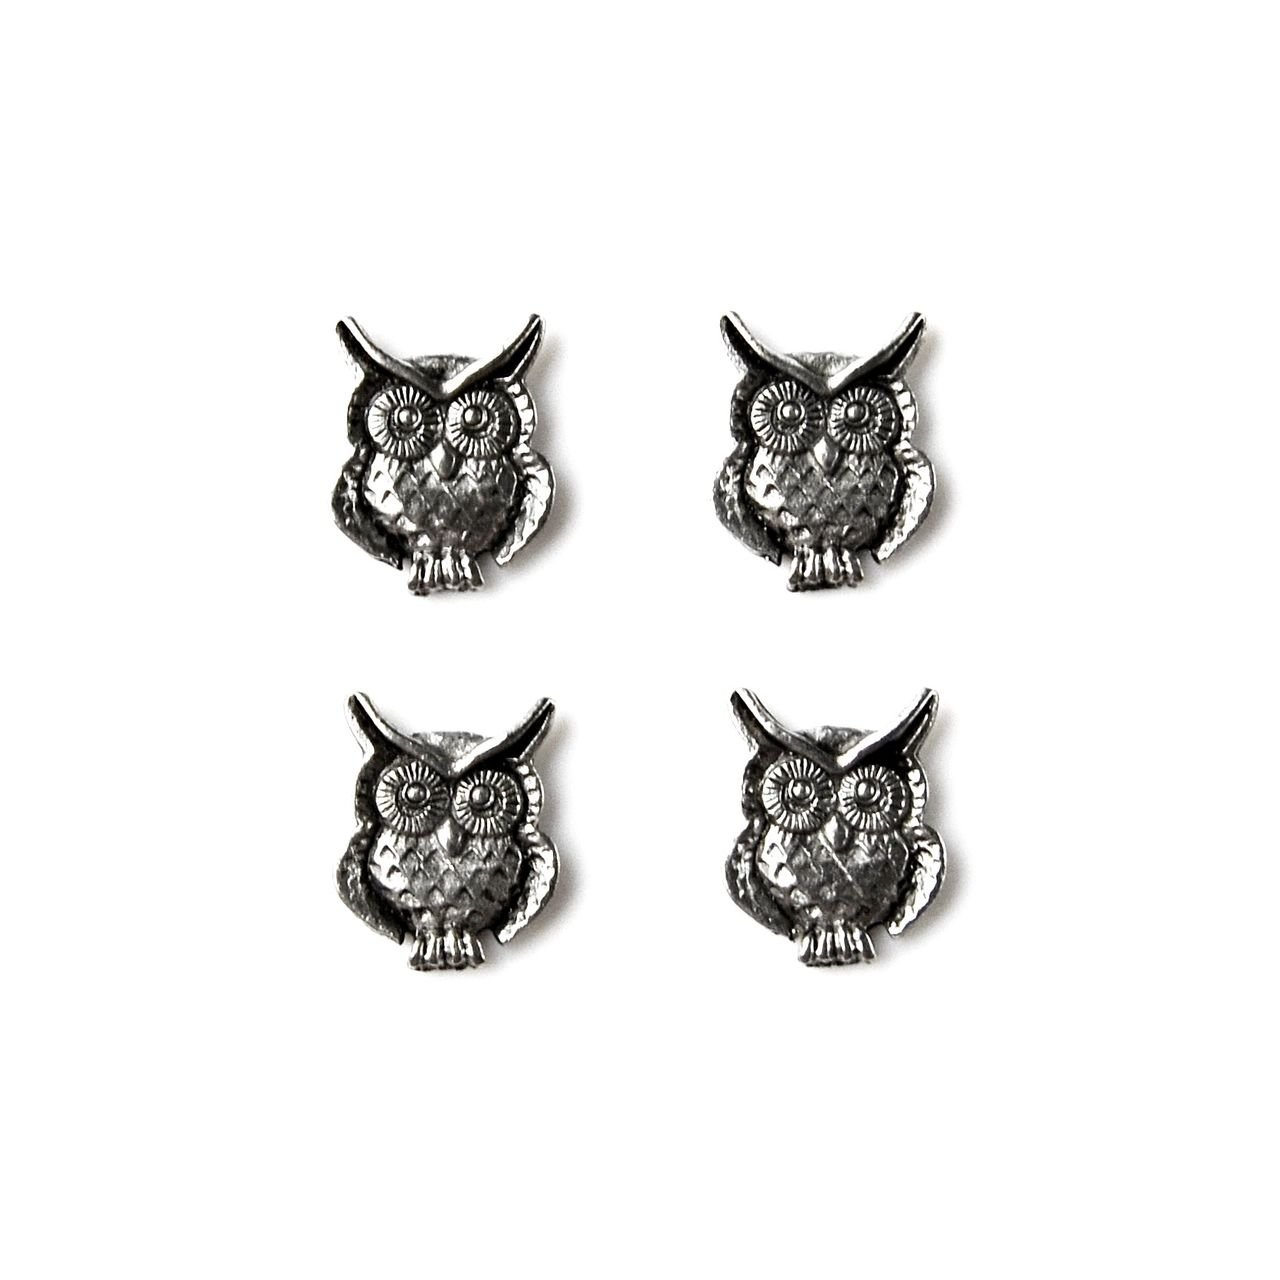 Quality Handcrafts Guaranteed Owl Tuxedo Studs